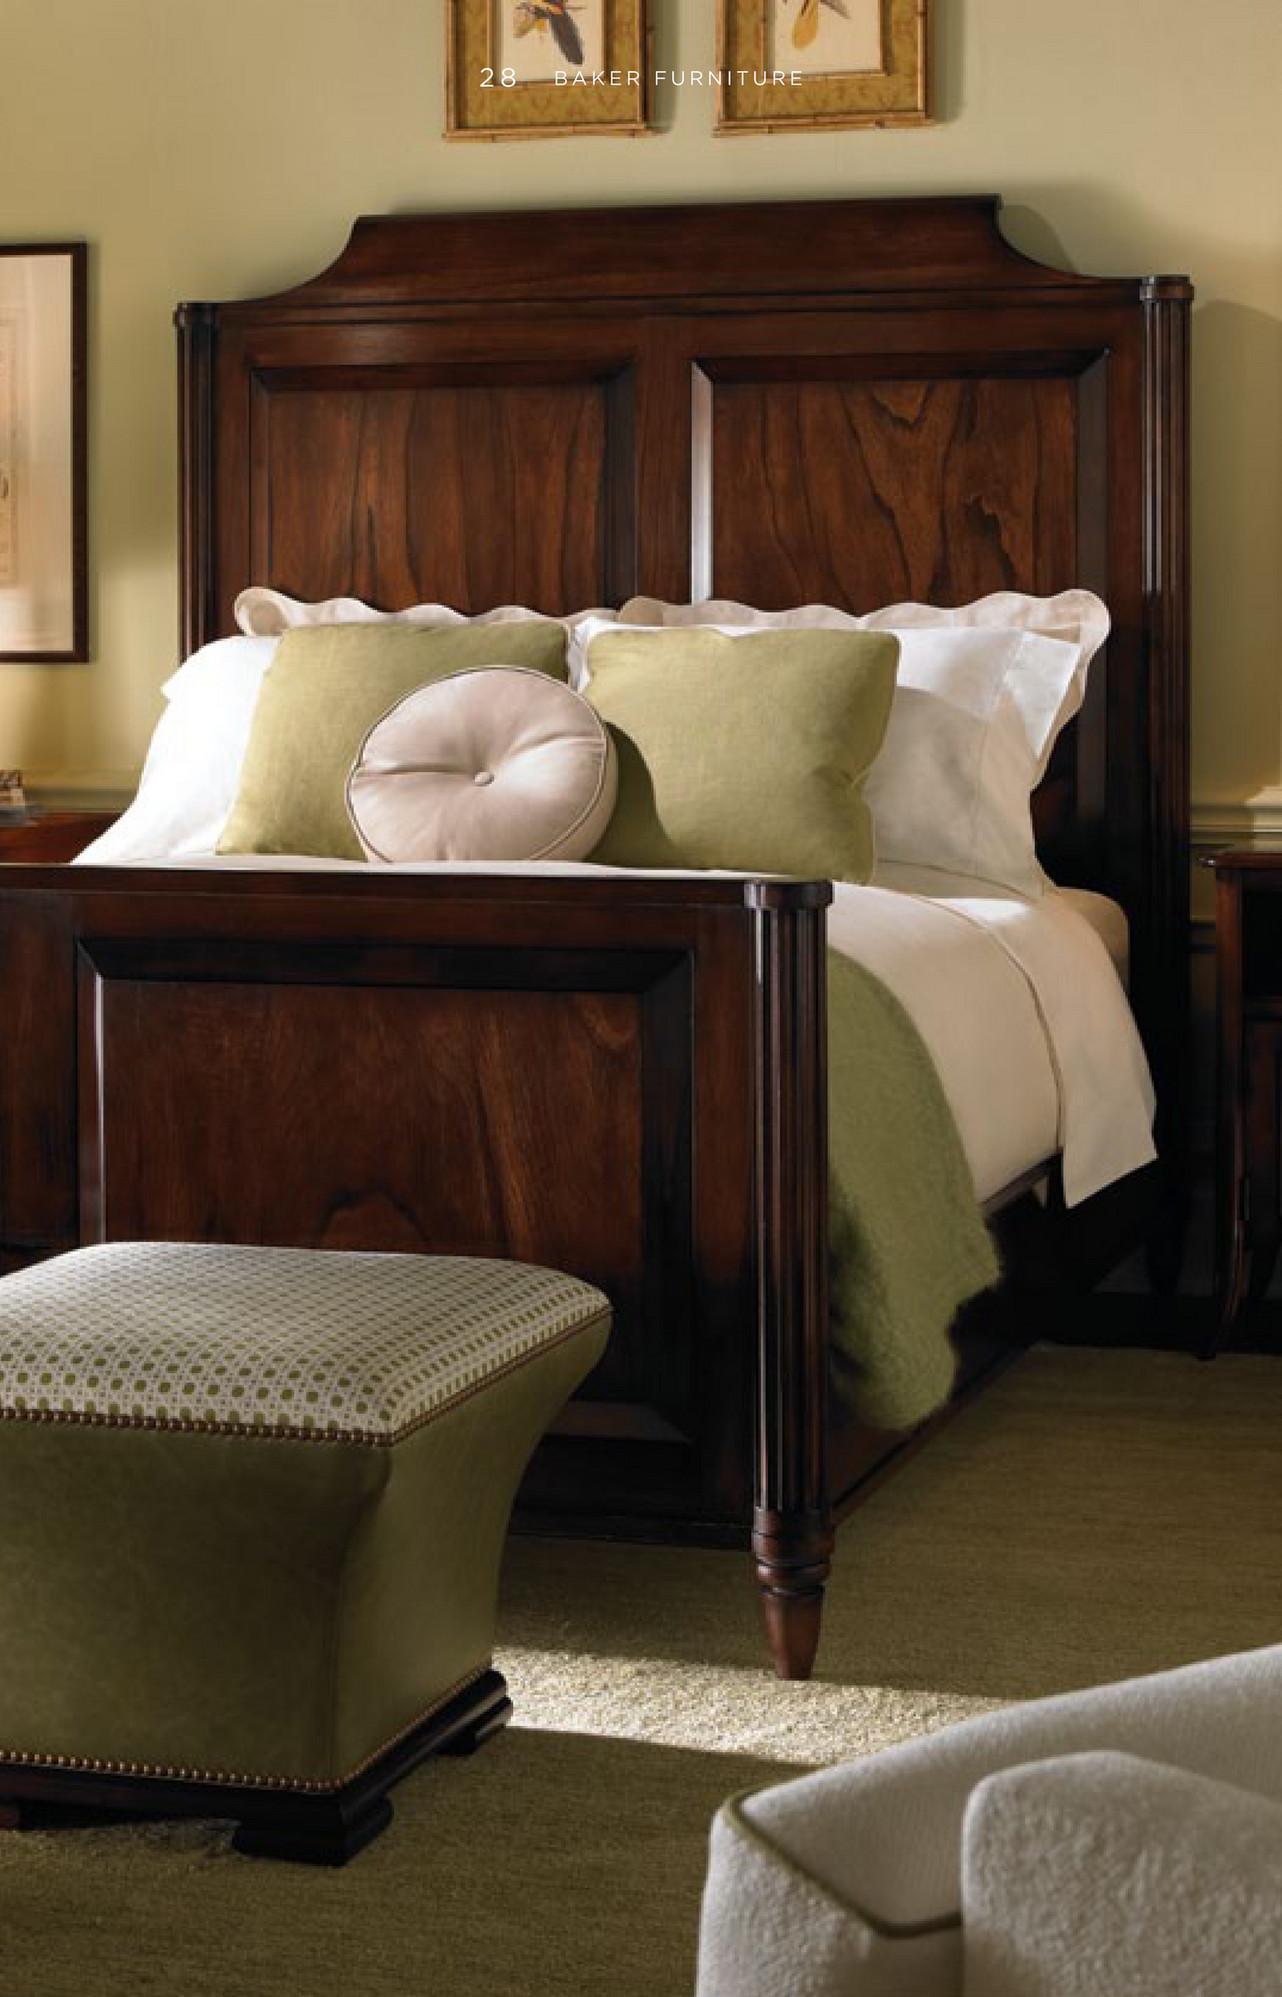 Sheffield Bedroom Furniture Sheffield Furniture Milling Road Brochure Page 30 31 Created